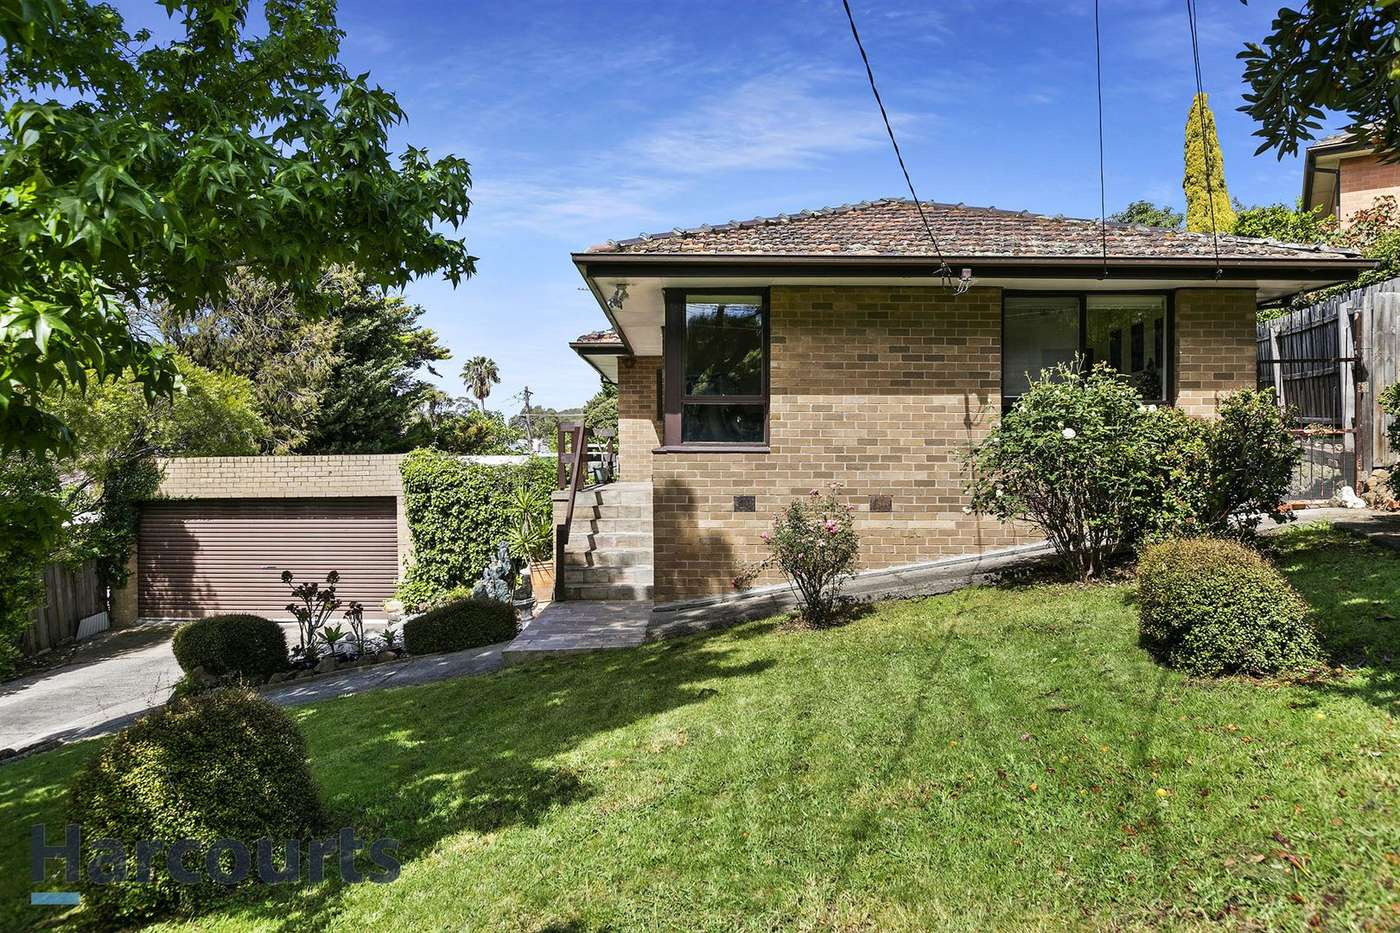 Main view of Homely house listing, 1 Jennifer Court, Avondale Heights, VIC 3034